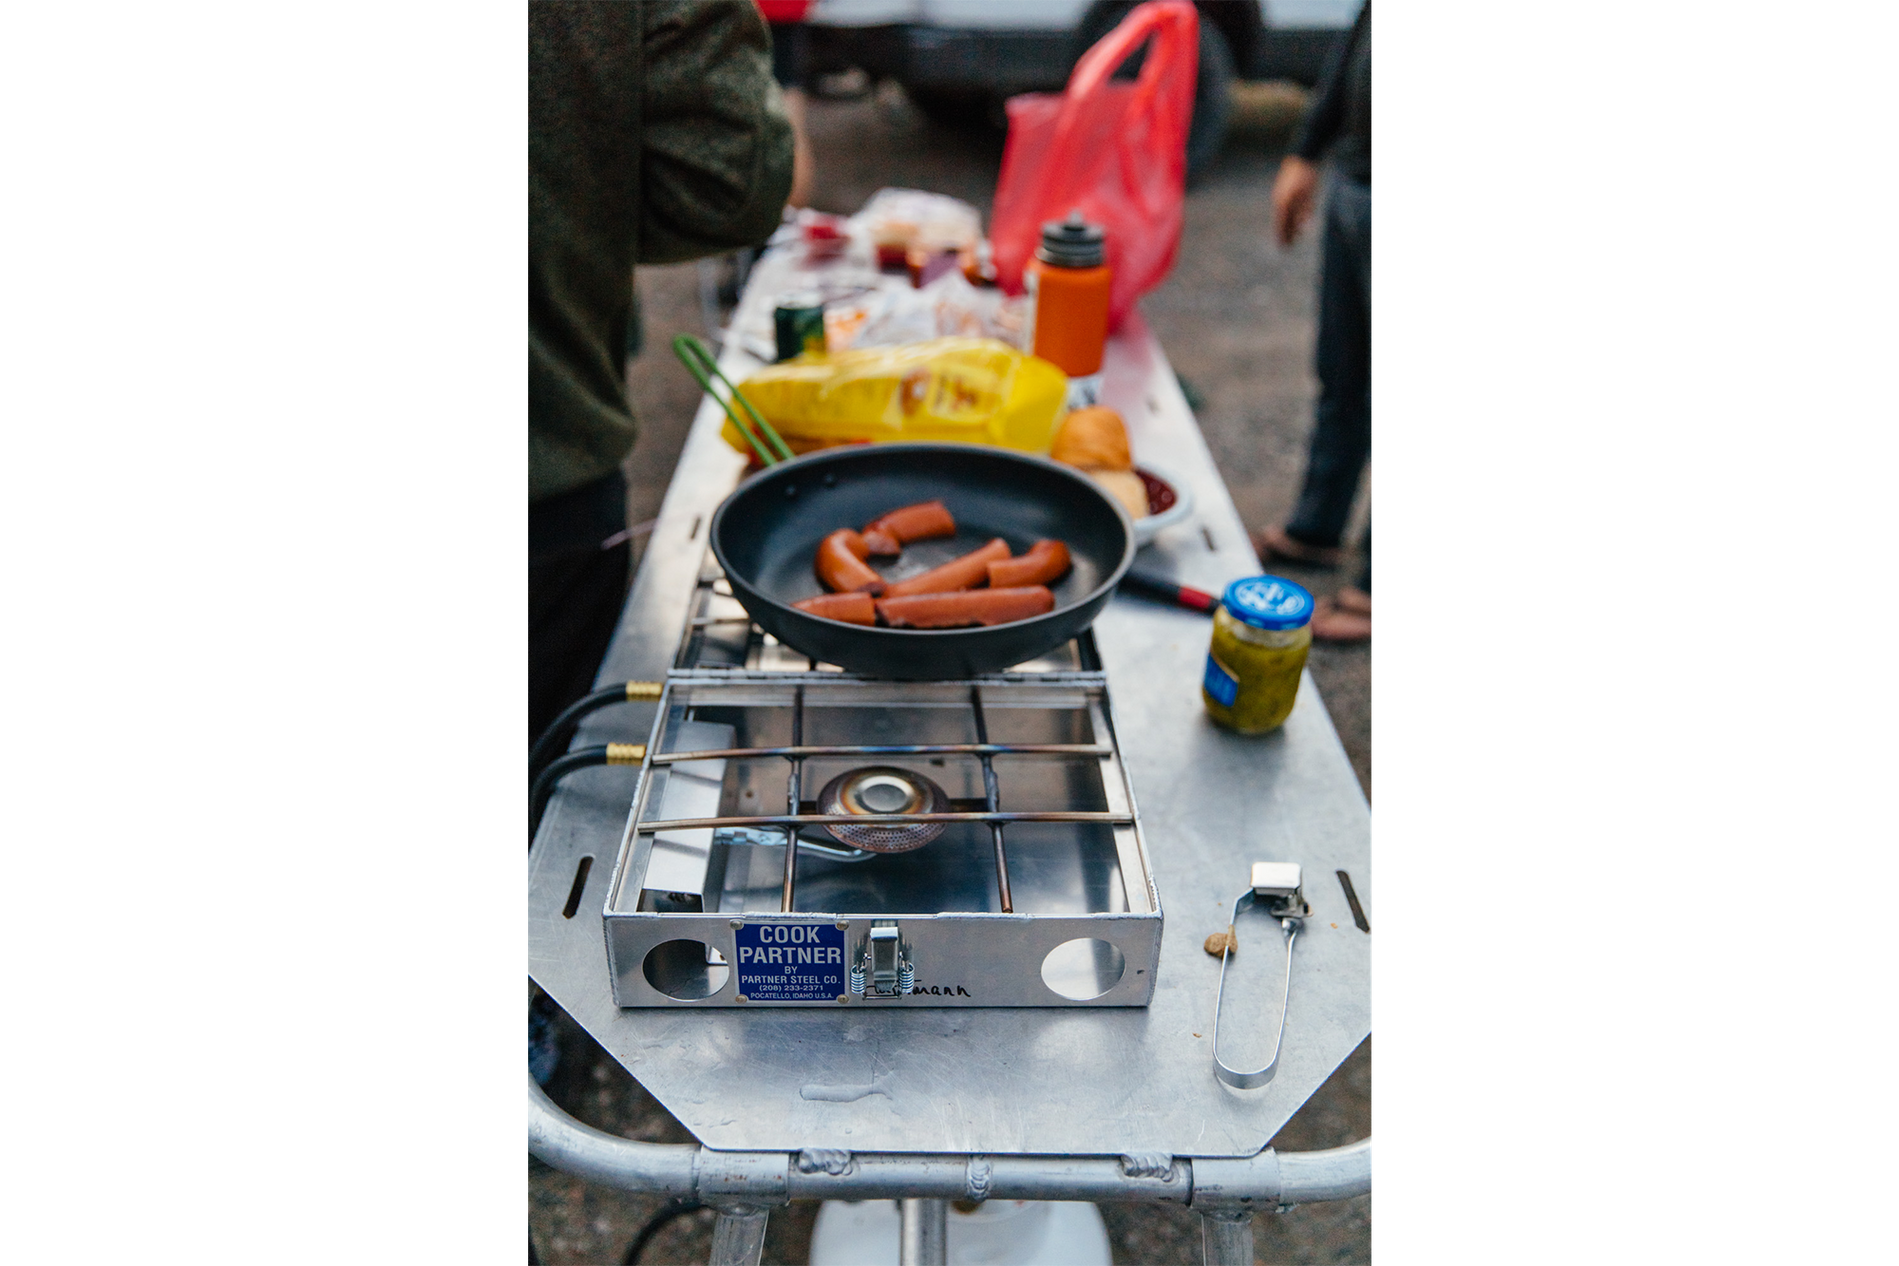 Such a sick setup. The table doubles as a emergency gurney for backcountry rescues.